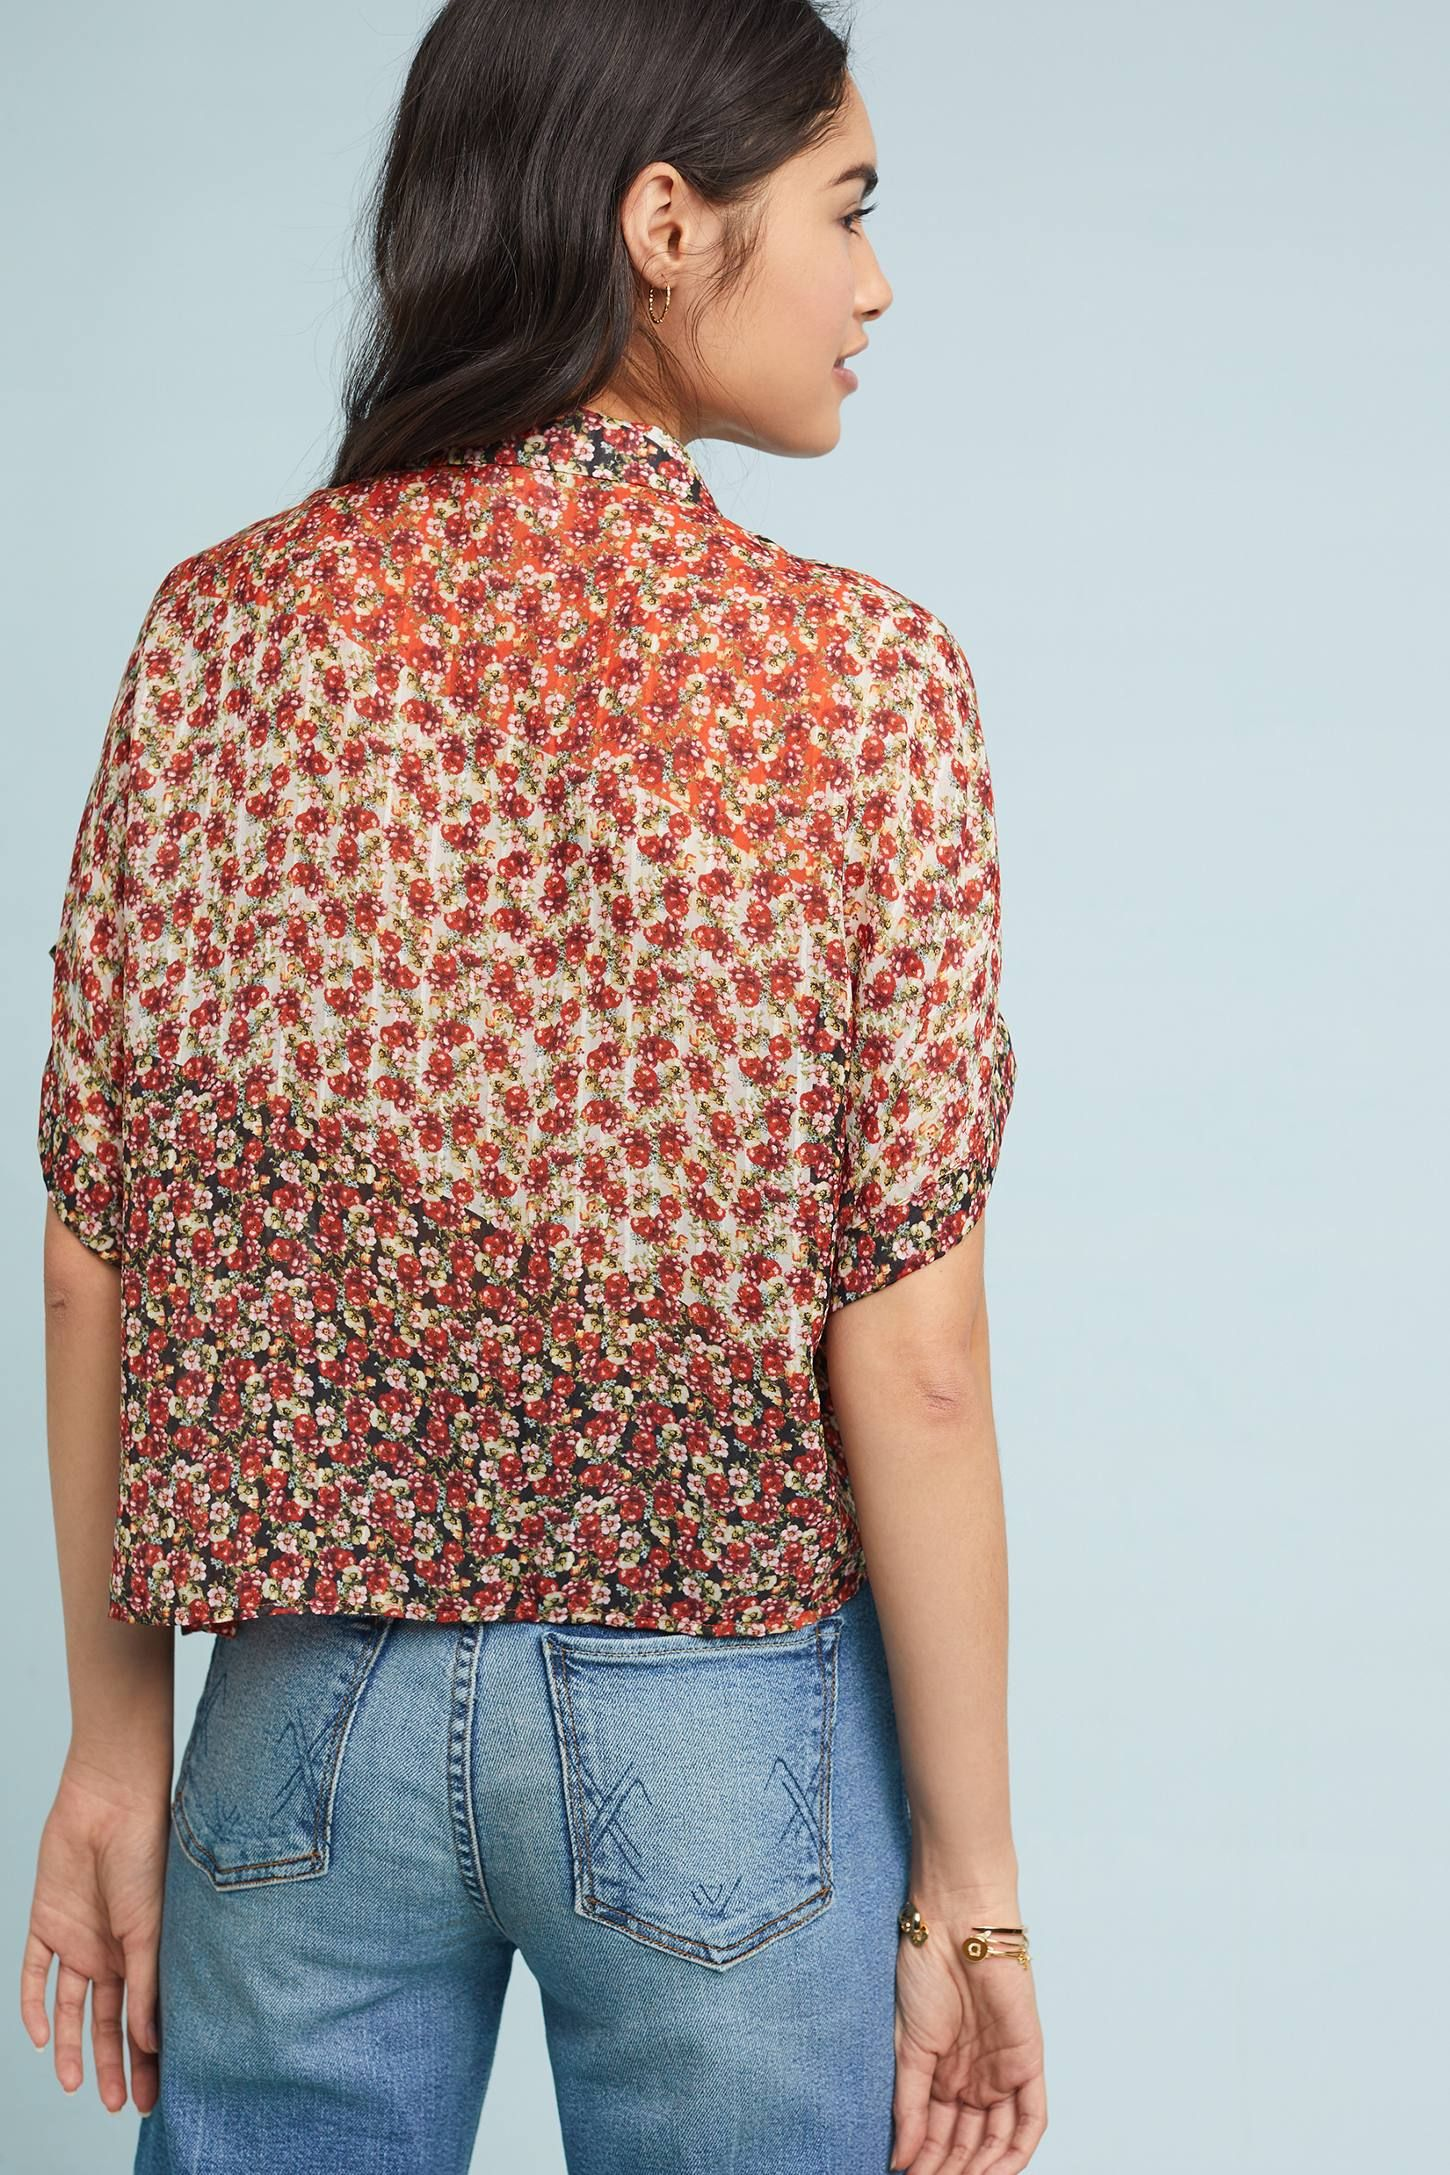 df71b31271181f Floral Melody Blouse | Anthropologie Floral Melody Blouse Feminine,  Silhouette, Men Casual, Blouse